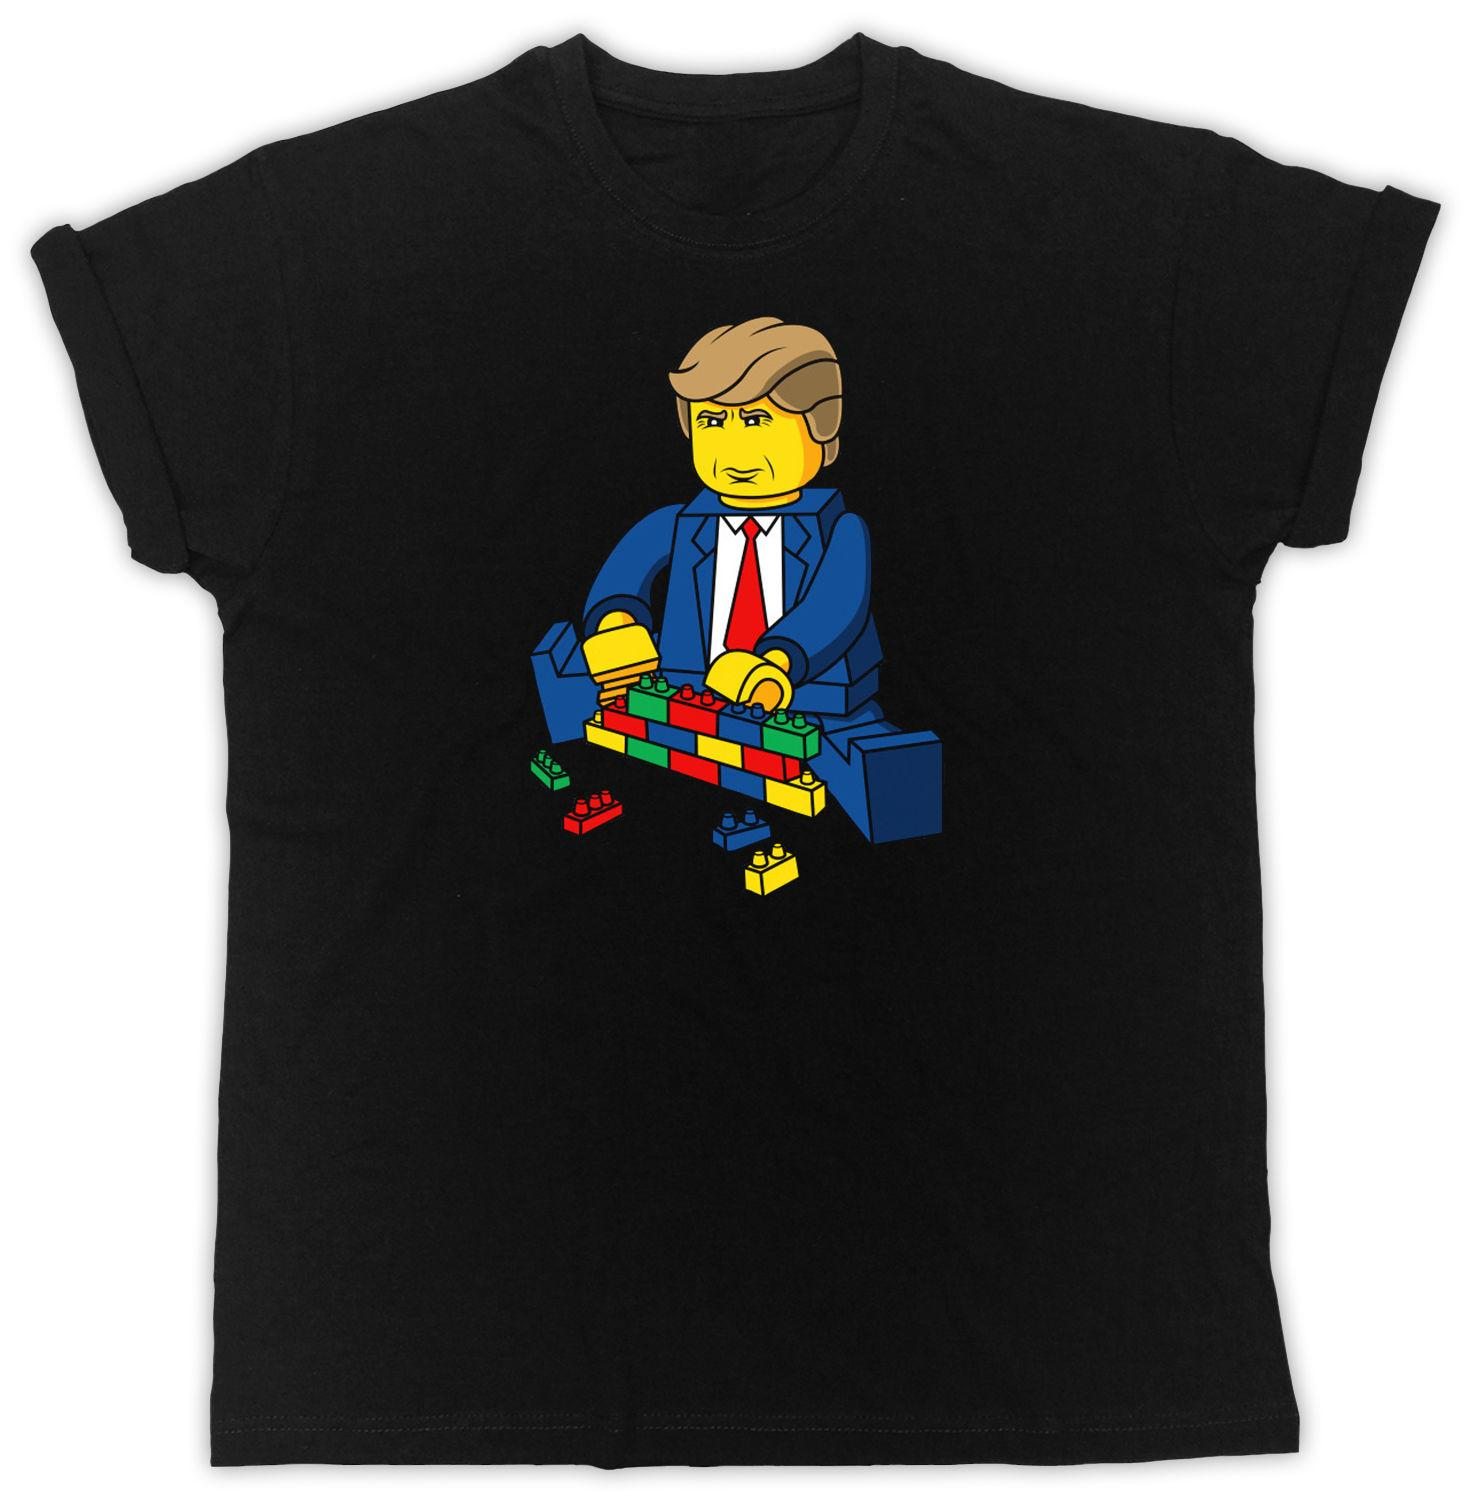 37cca5d016f FUNNY DONALD TRUMP BUILD A WALL LEGO IDEAL GIFT COOL RETRO UNISEX BLACK T  SHIRT Online with  13.72 Piece on Tshirtemperor31 s Store